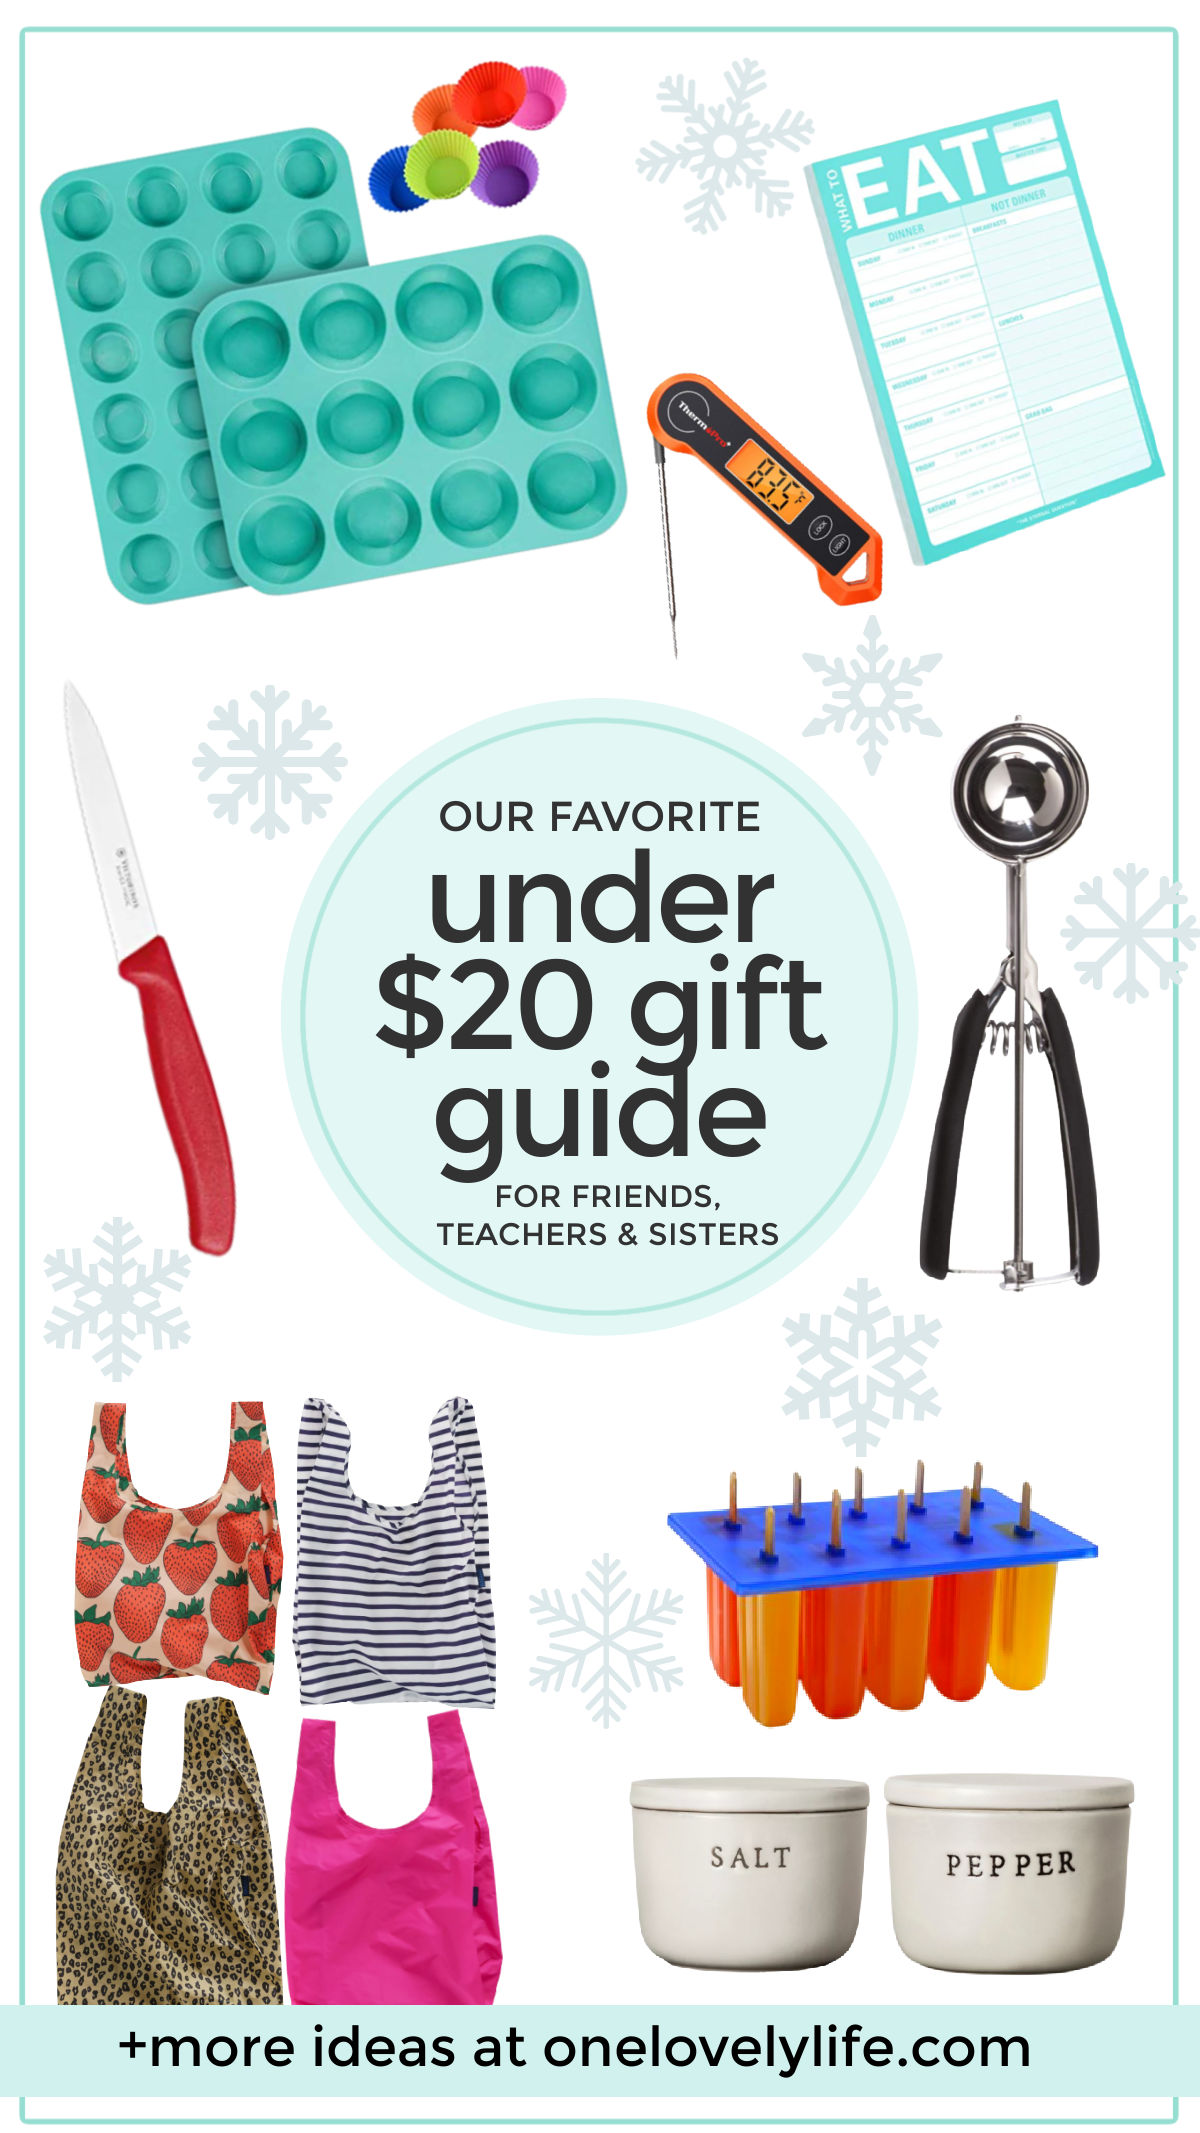 The Under $20 Gift Guide is HERE! - Great gifts can be found on a budget! I've rounded up 40+ AWESOME gifts ideas for $20 or less. They're perfect for friends, sisters, moms, in-laws, teachers, and YOU! // Budget gift ideas // teacher gift ideas // friend gift ideas // sister gift ideas // mother in law gifts // mom gifts // gifts for mom // gifts for in-laws // gifts for teachers // gifts for friends // gifts for sisters #giftguide #giftideas #holidaygifts #budgetgifts